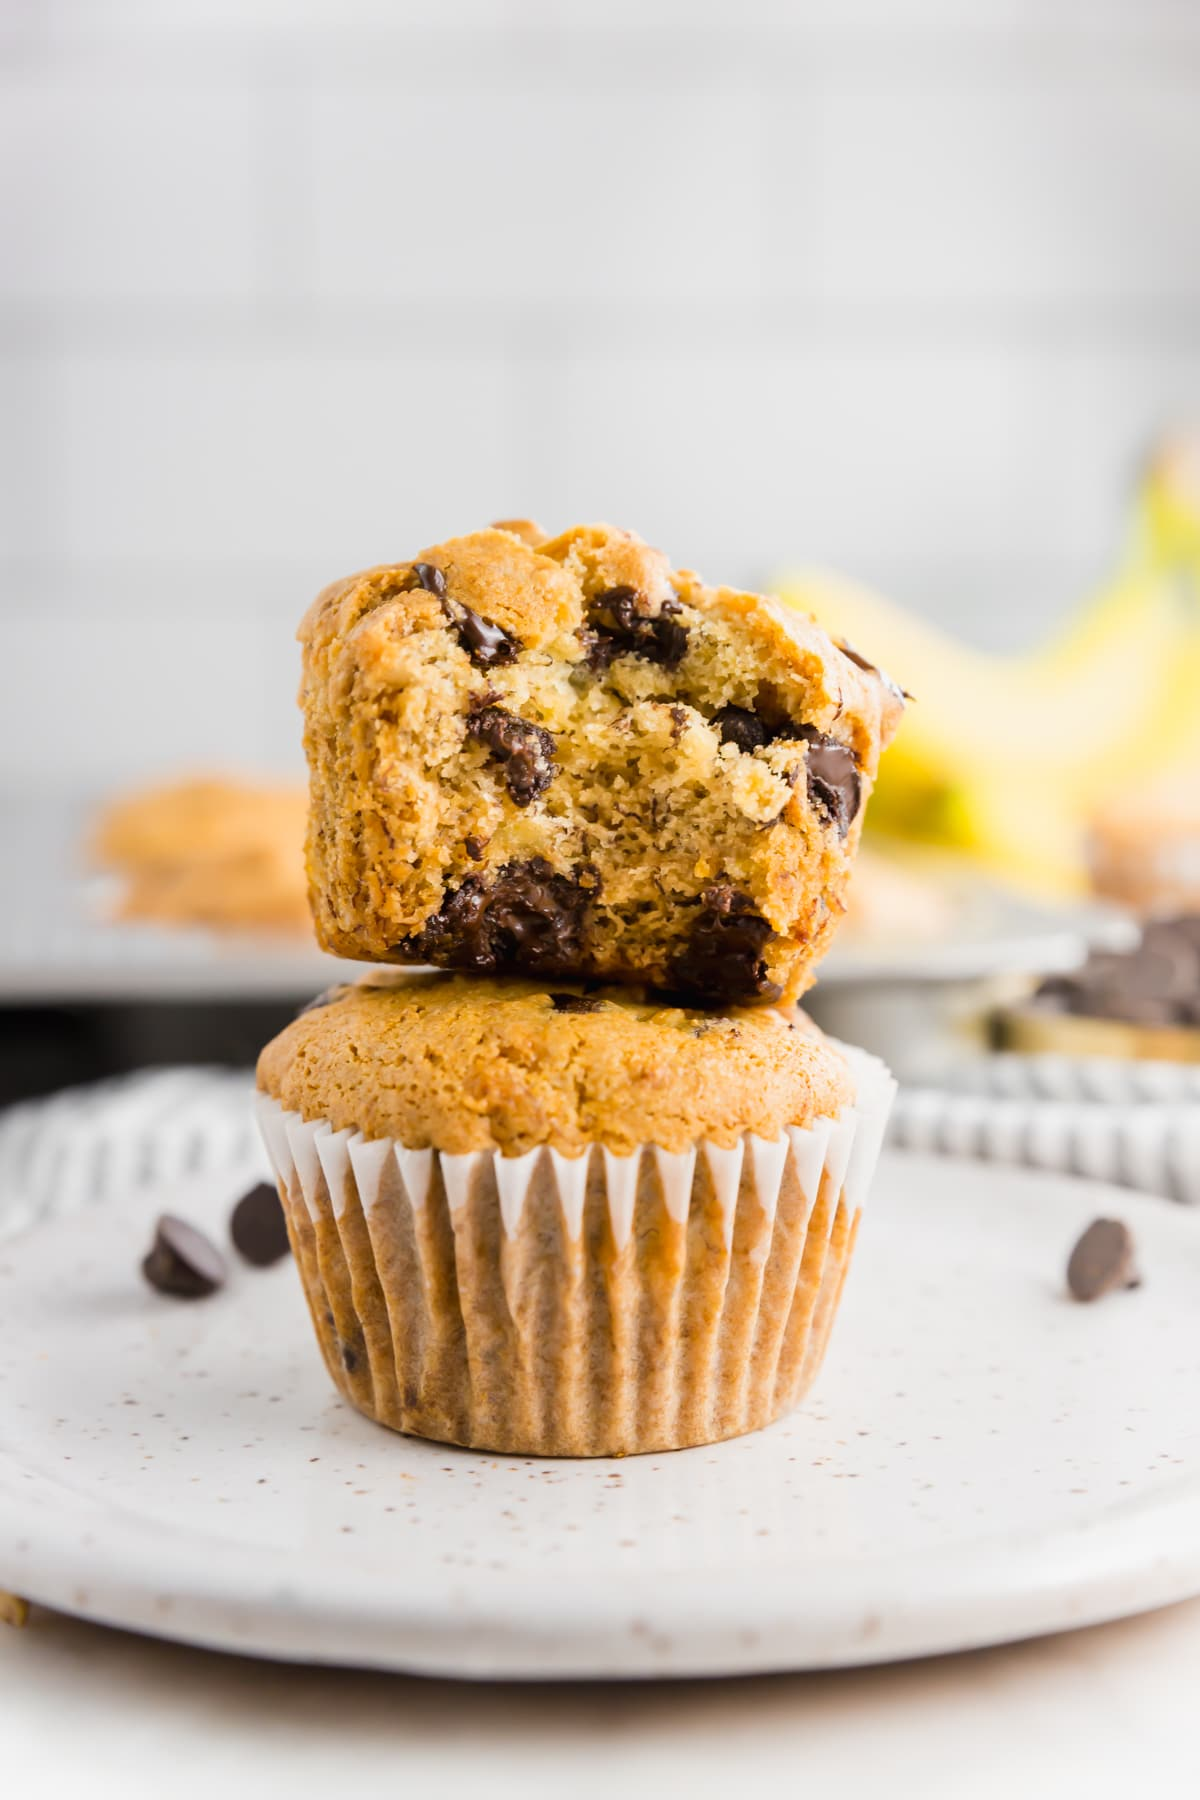 Two gluten-free vegan banana chocolate chips banana muffins stacked on top of each other.